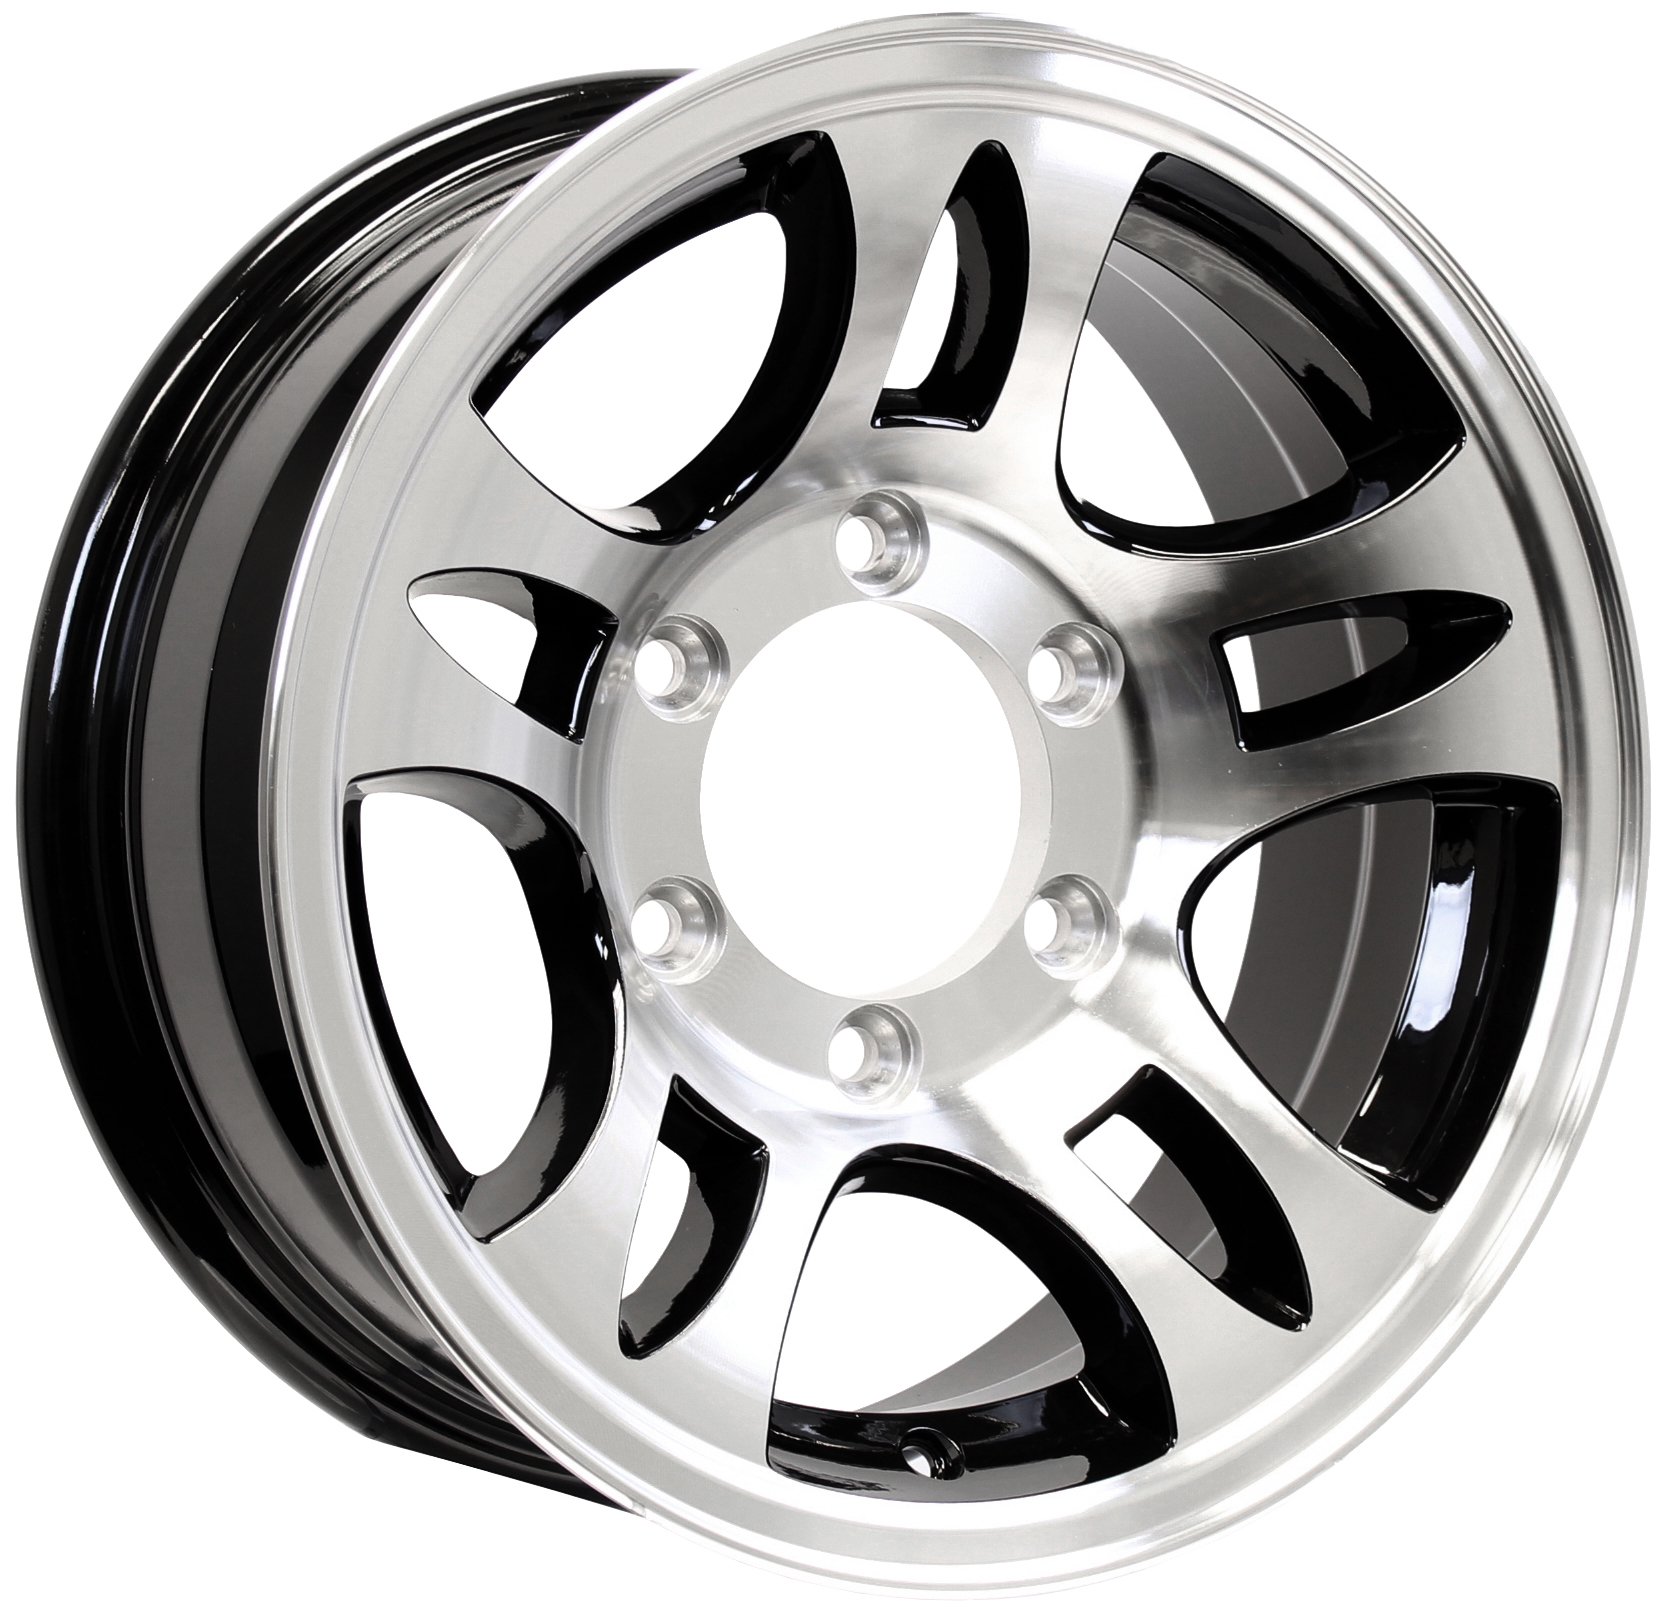 T03- 16x6; 6-Lug Black Machined Aluminum Trailer Wheel Image